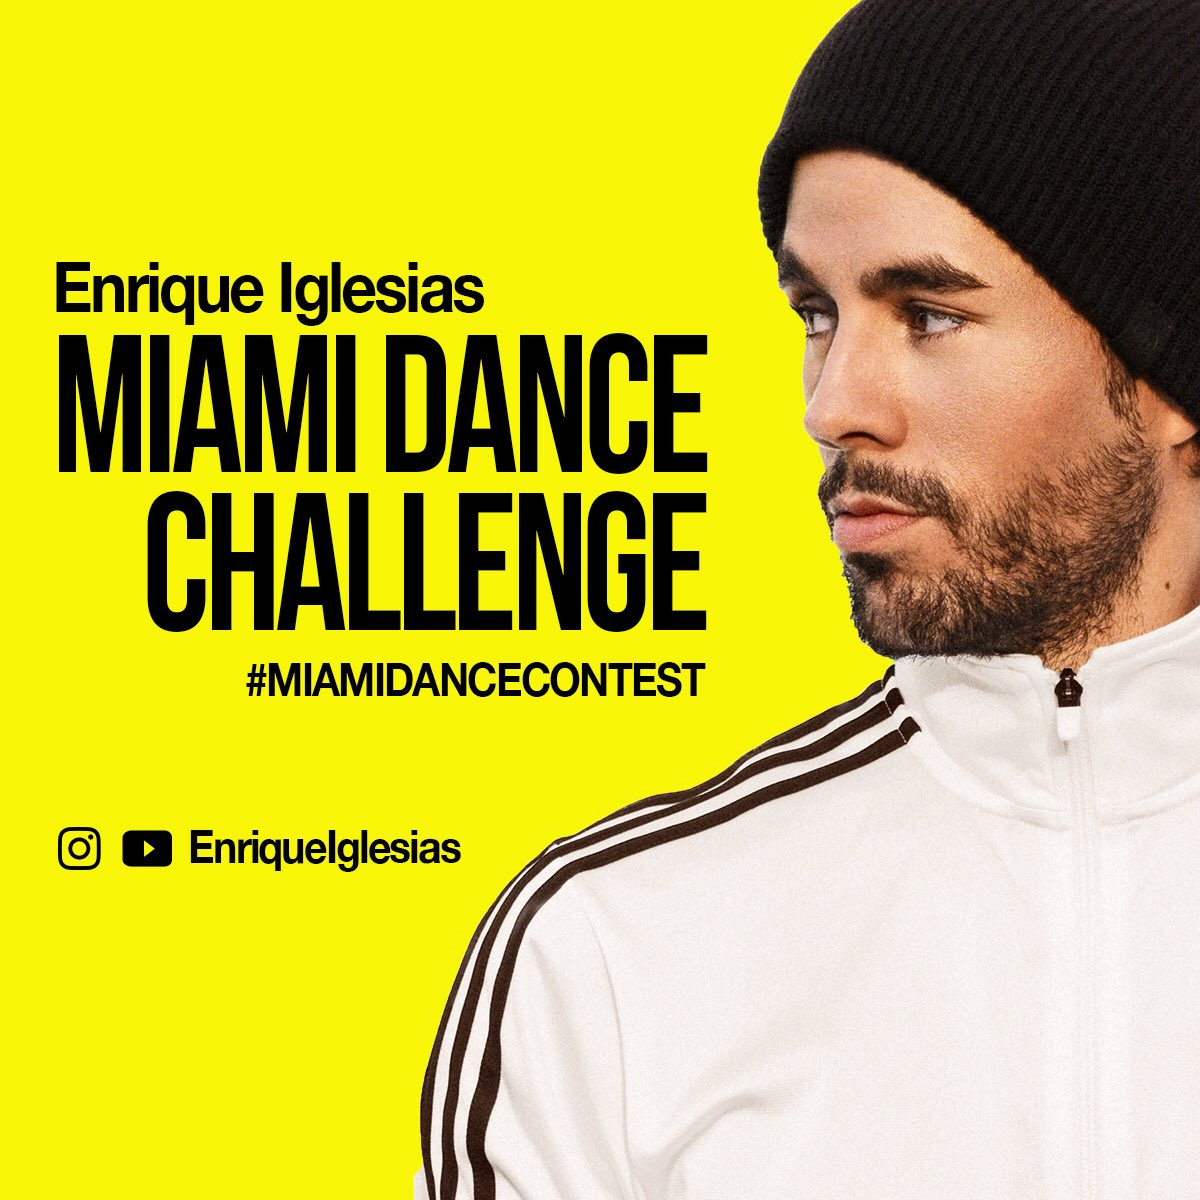 💃 🕺 So inspired by the #MOVETOMIAMI dance videos that we launched an official dance contest to win a VIP trip to the Vegas show in September! Enter here: https://t.co/O1DEwIvw4u #MiamiDanceContest https://t.co/mQEa1XMfxW